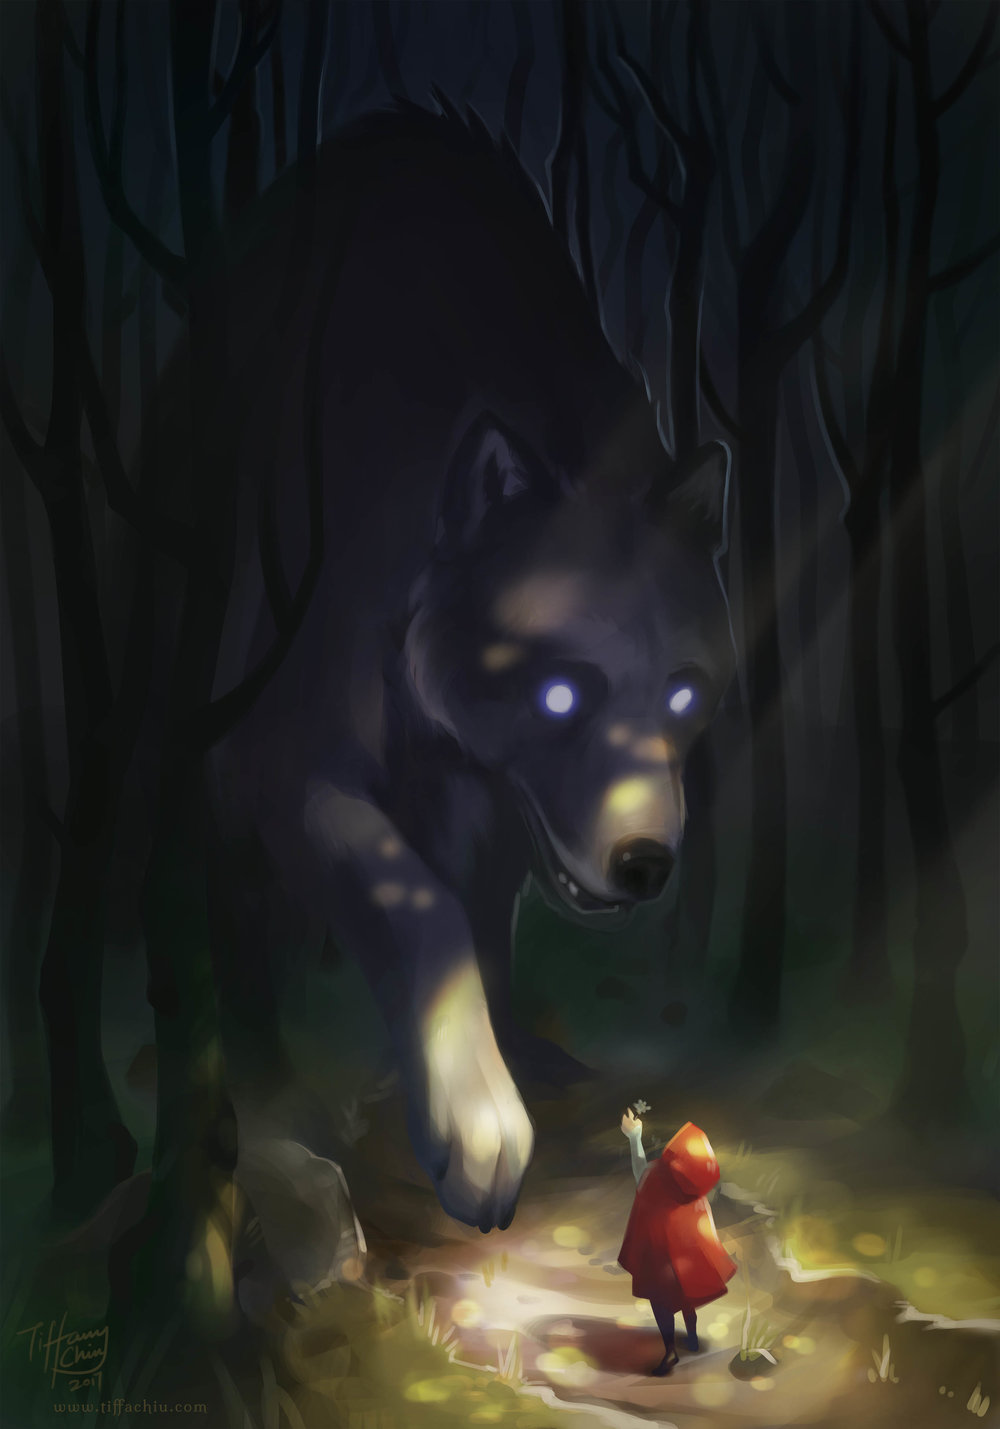 Then Little Red Riding Hood and Big Bad Wolf became the best of friends.